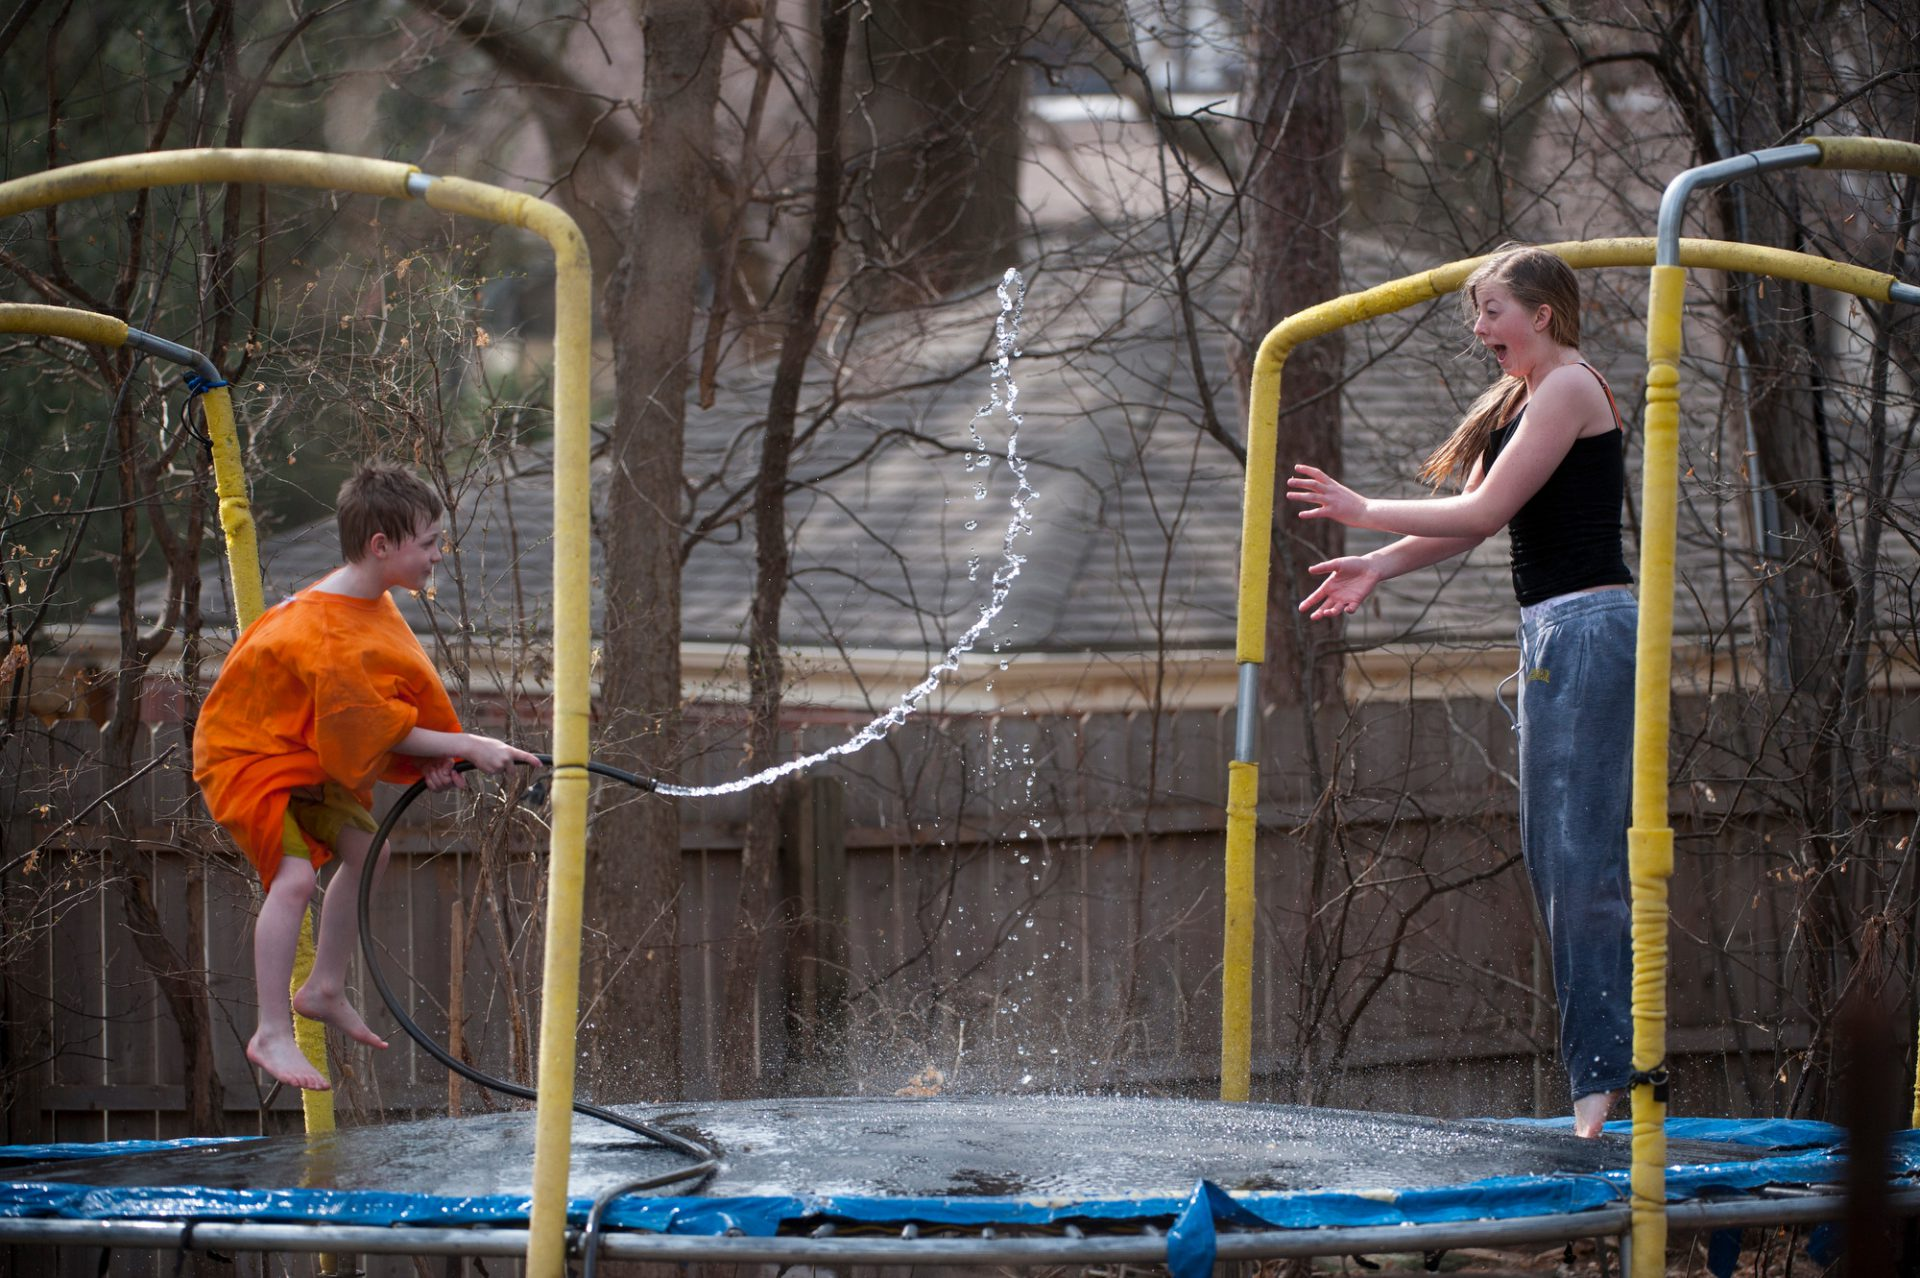 Photo: A brother and sister have a water fight on their trampoline.